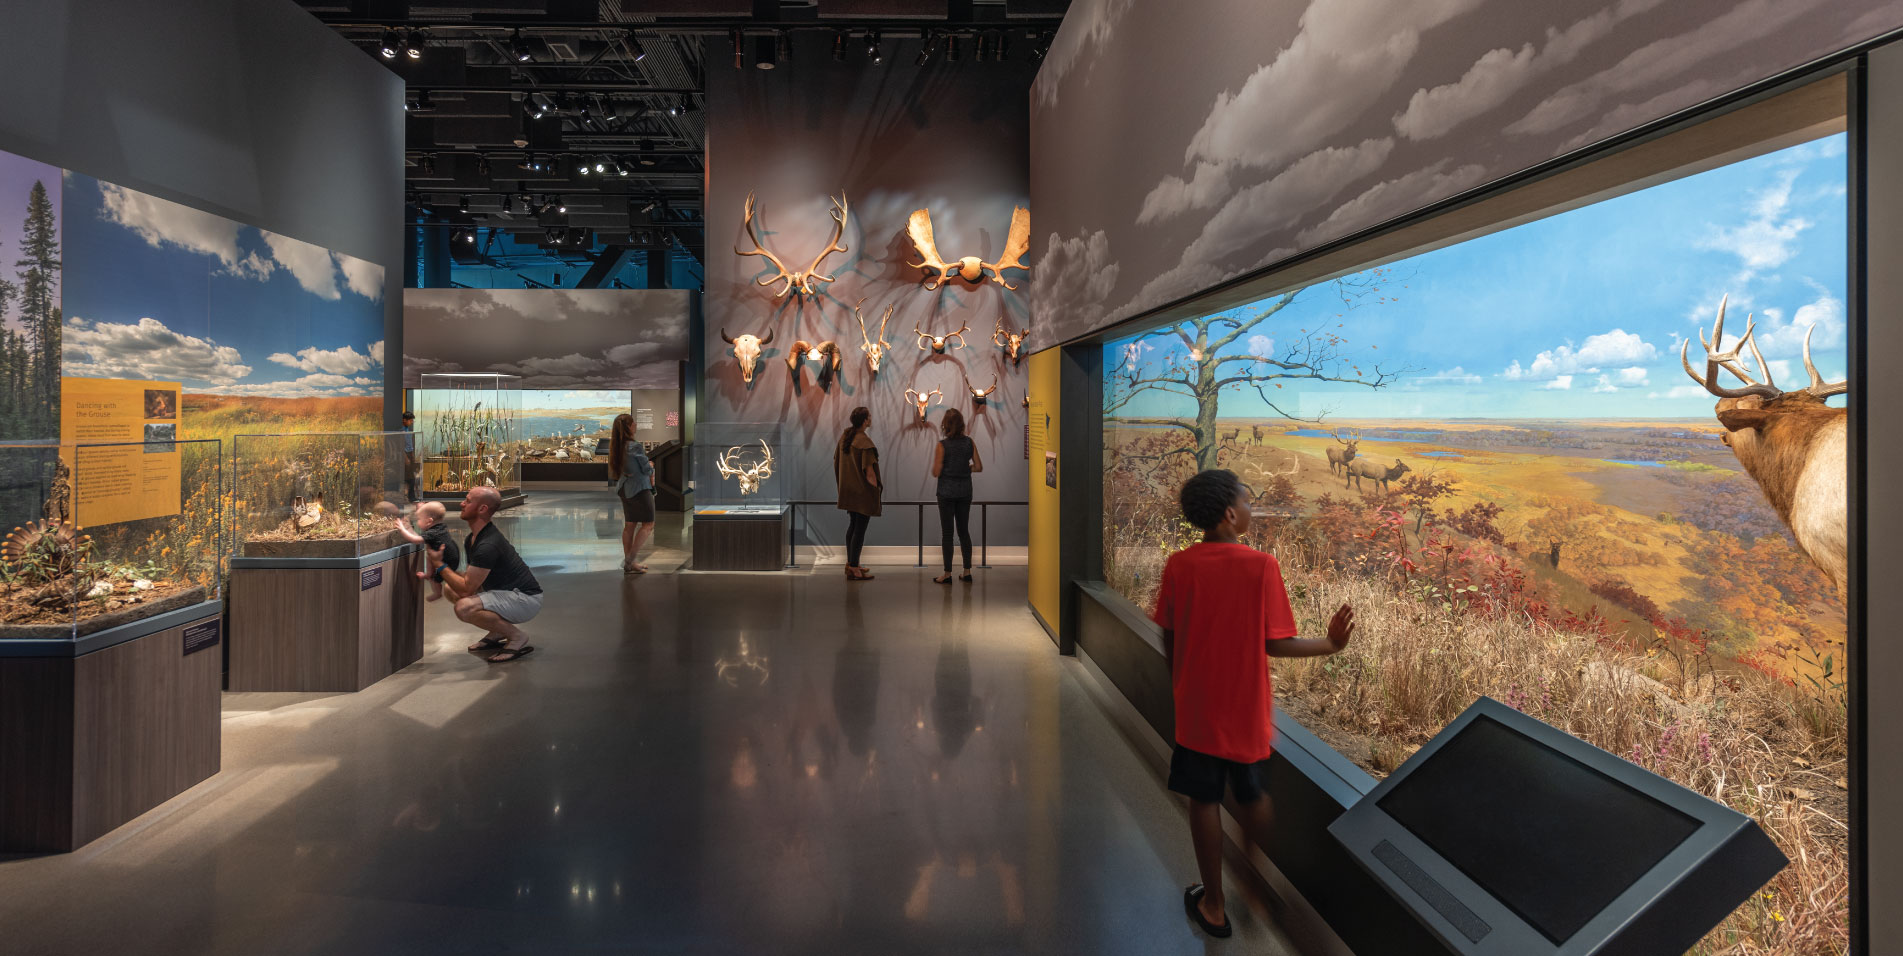 People looking at dioramas and other exhibits in the museum